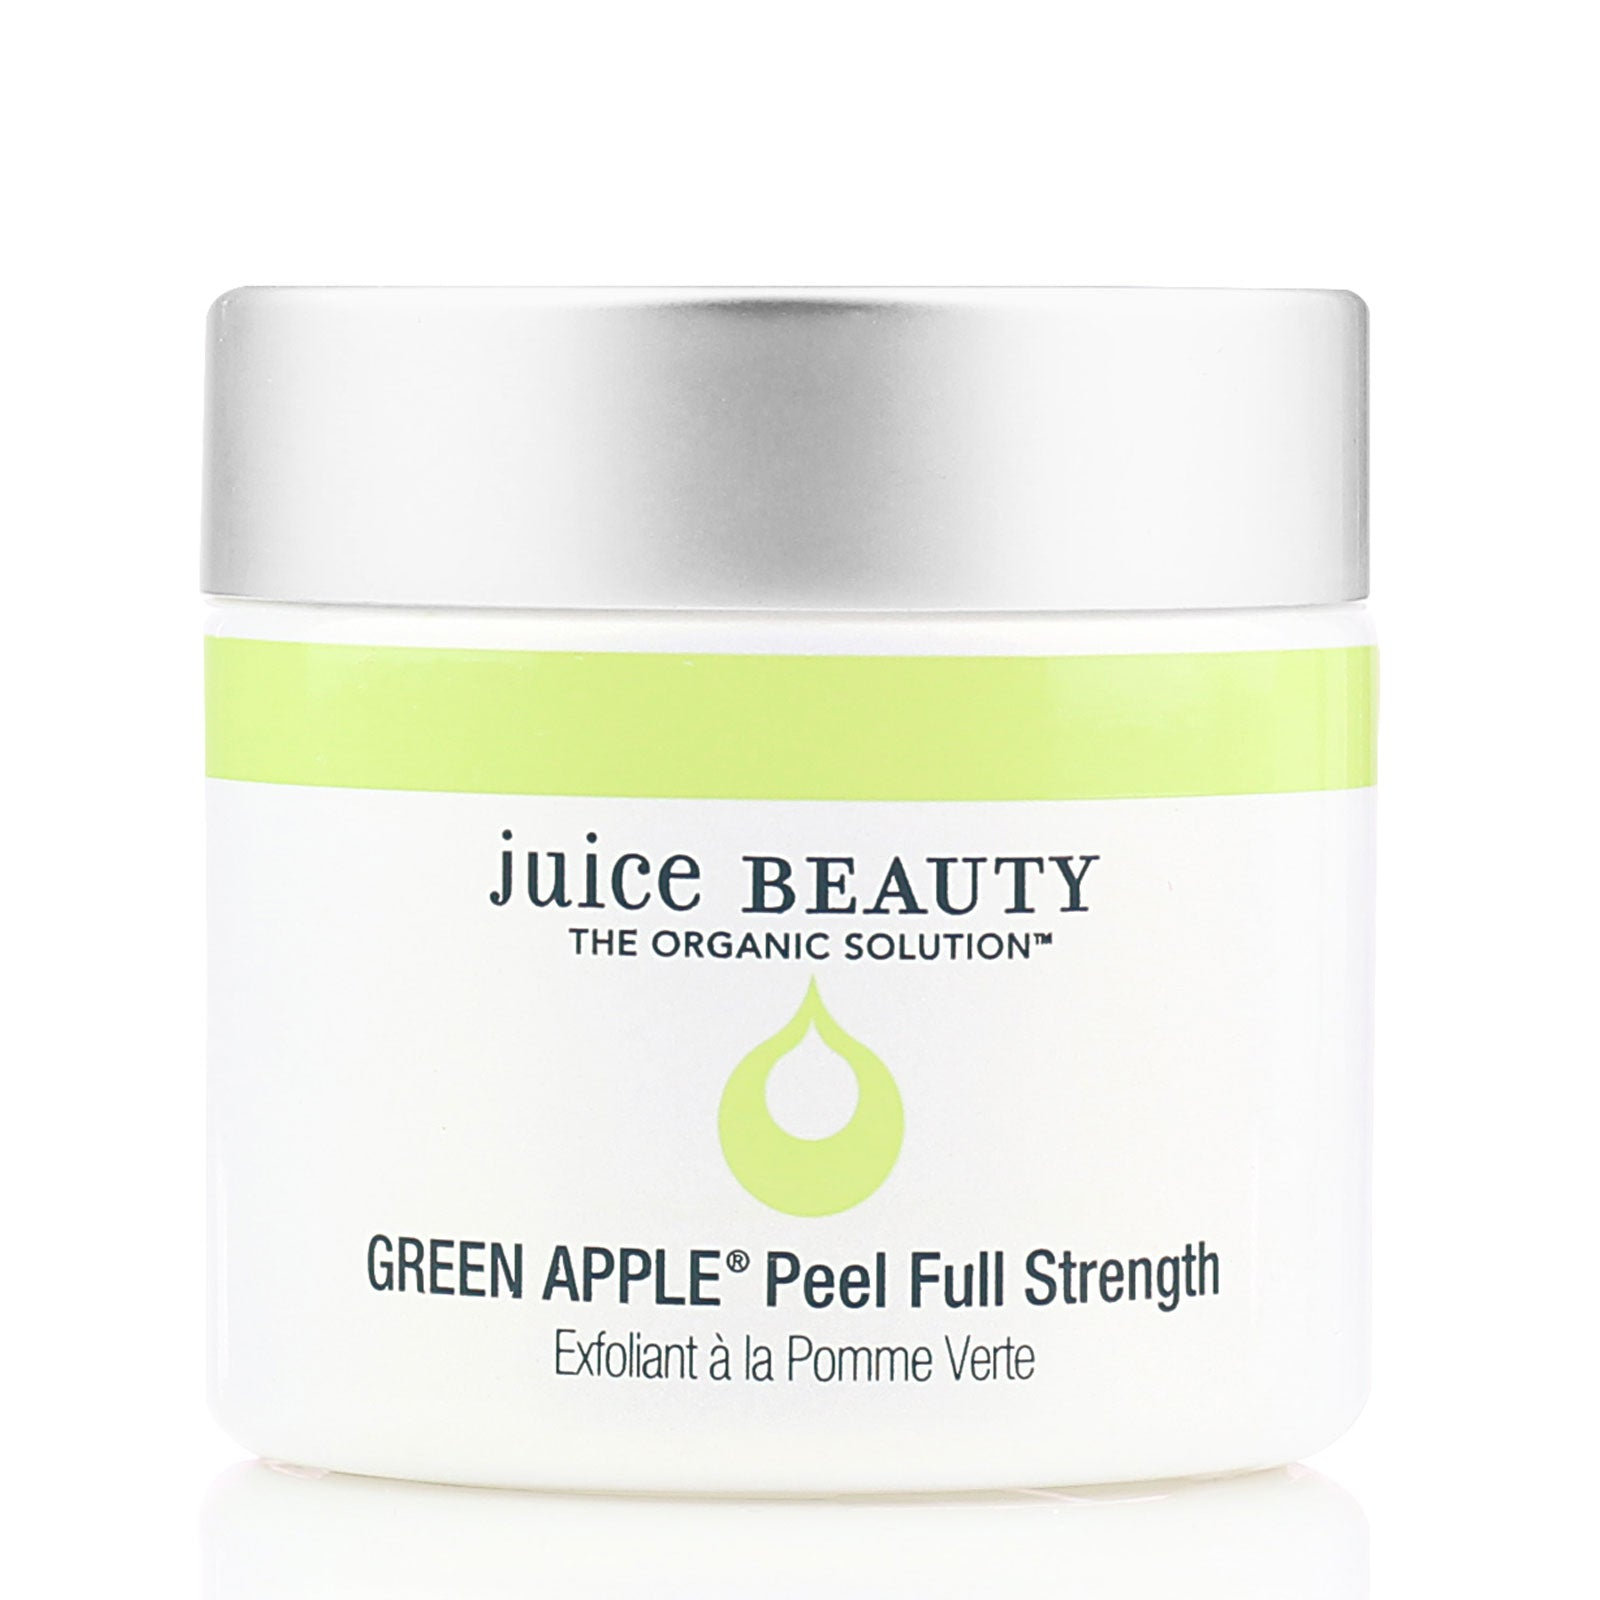 Juice Beauty GREEN APPLE Peel Full Strength 60ml